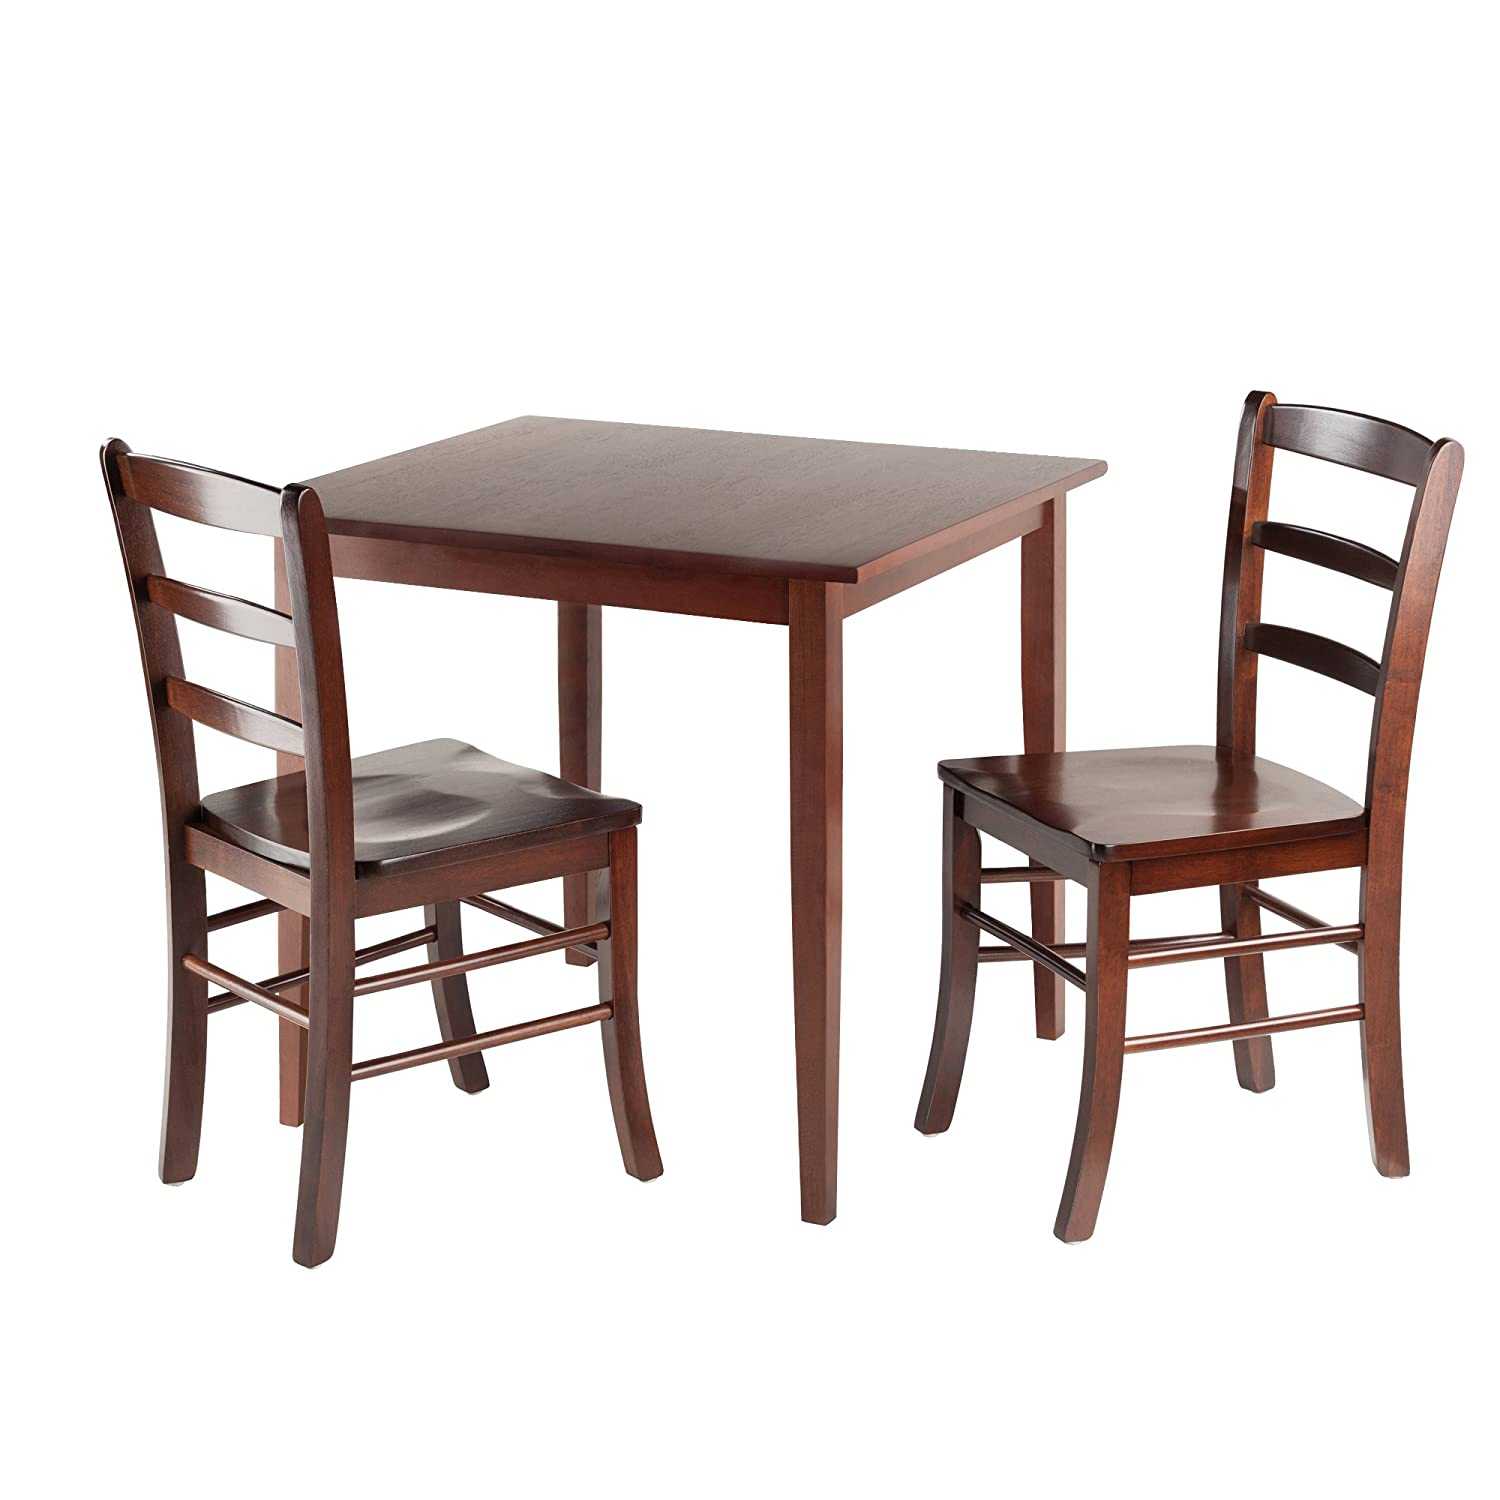 Dinning Tables Set Part - 47: Amazon.com - Winsome Groveland 3-Piece Wood Dining Set, Light Oak Finish -  Chairs